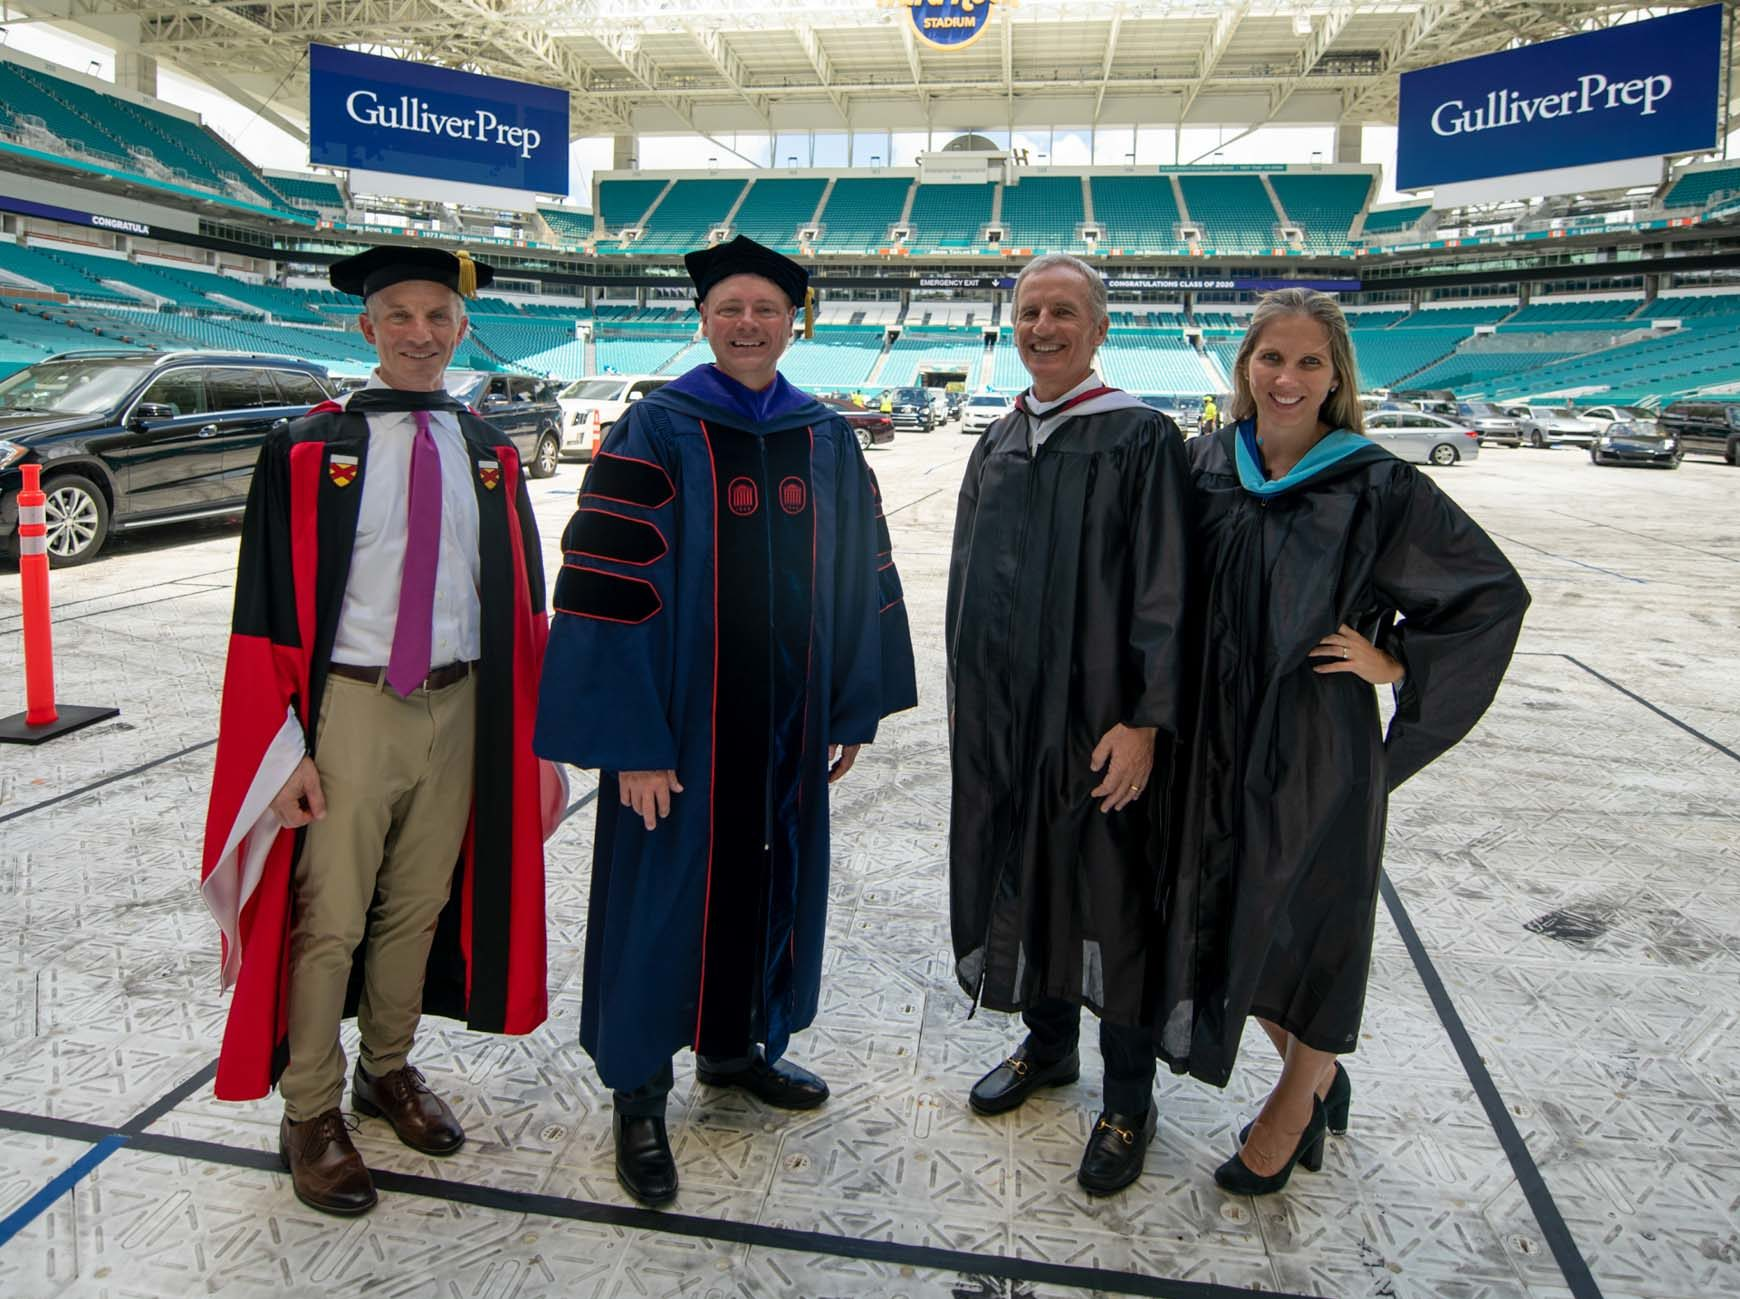 Four members of the Gulliver leadership team standing in the graduation venue